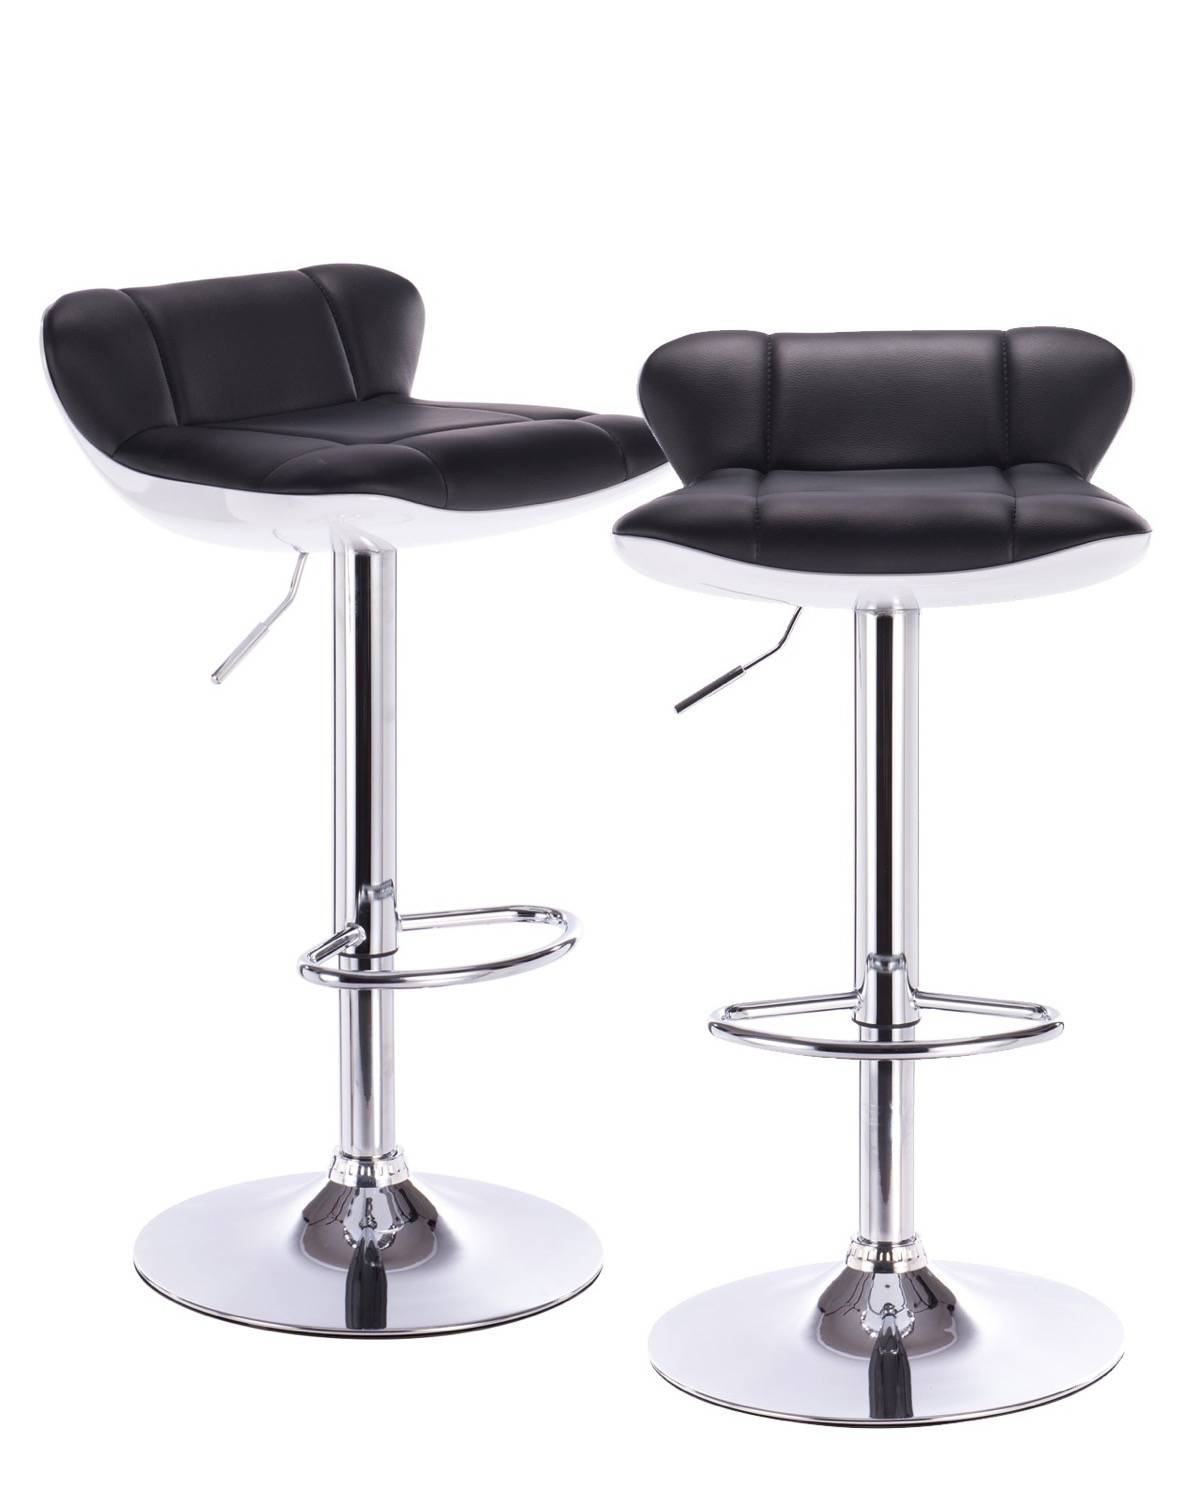 Charly Lot De 2 Tabourets De Bar Noirs Charly Lot De 2 Tabourets De Bar Noirs Tabouret Design Pas Cher